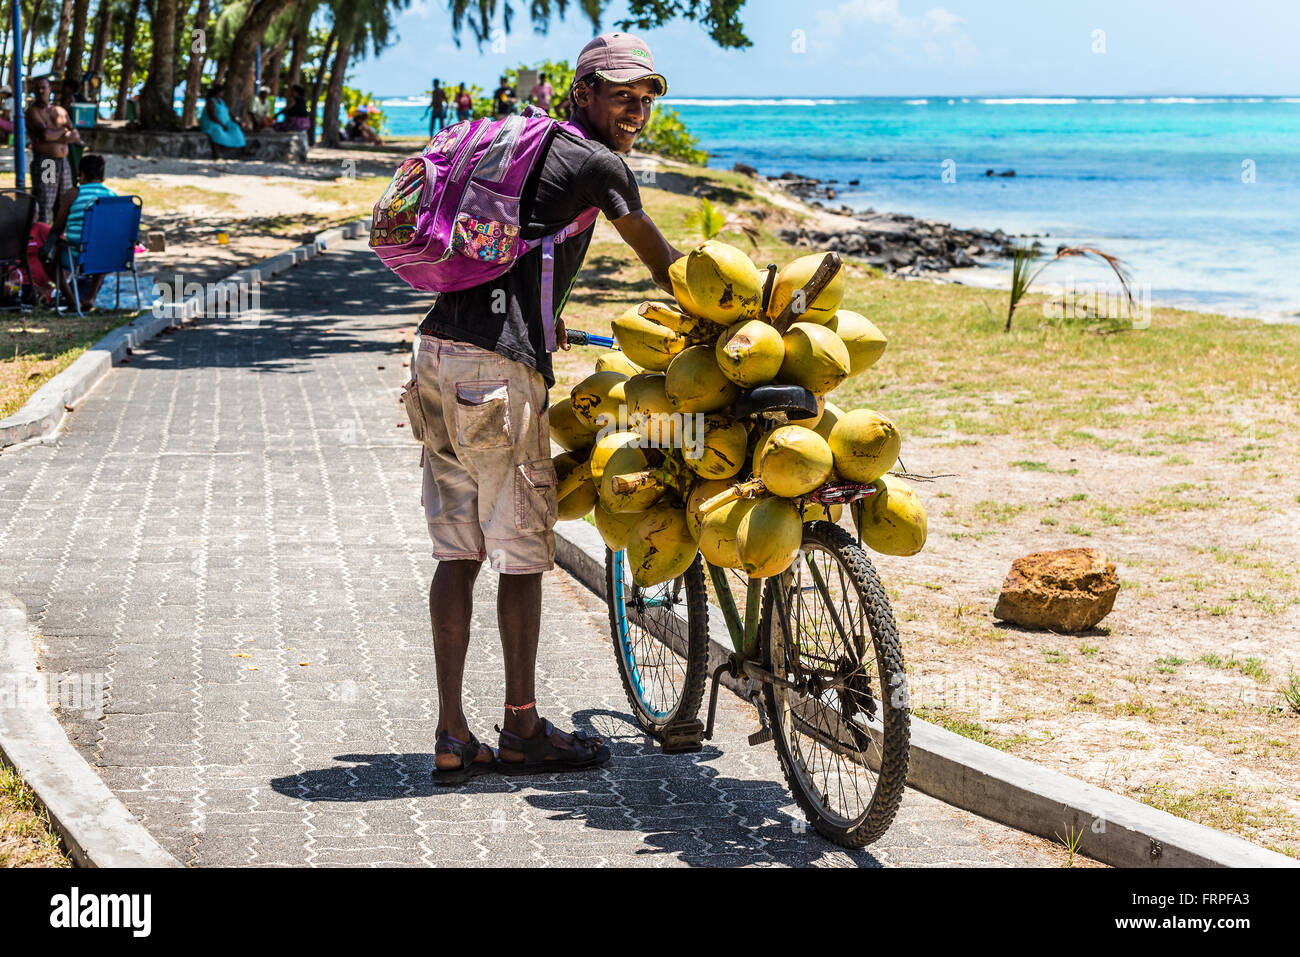 Mauritius young man selling coconuts from his bike on the beach Blue Bay, Mauritius. - Stock Image